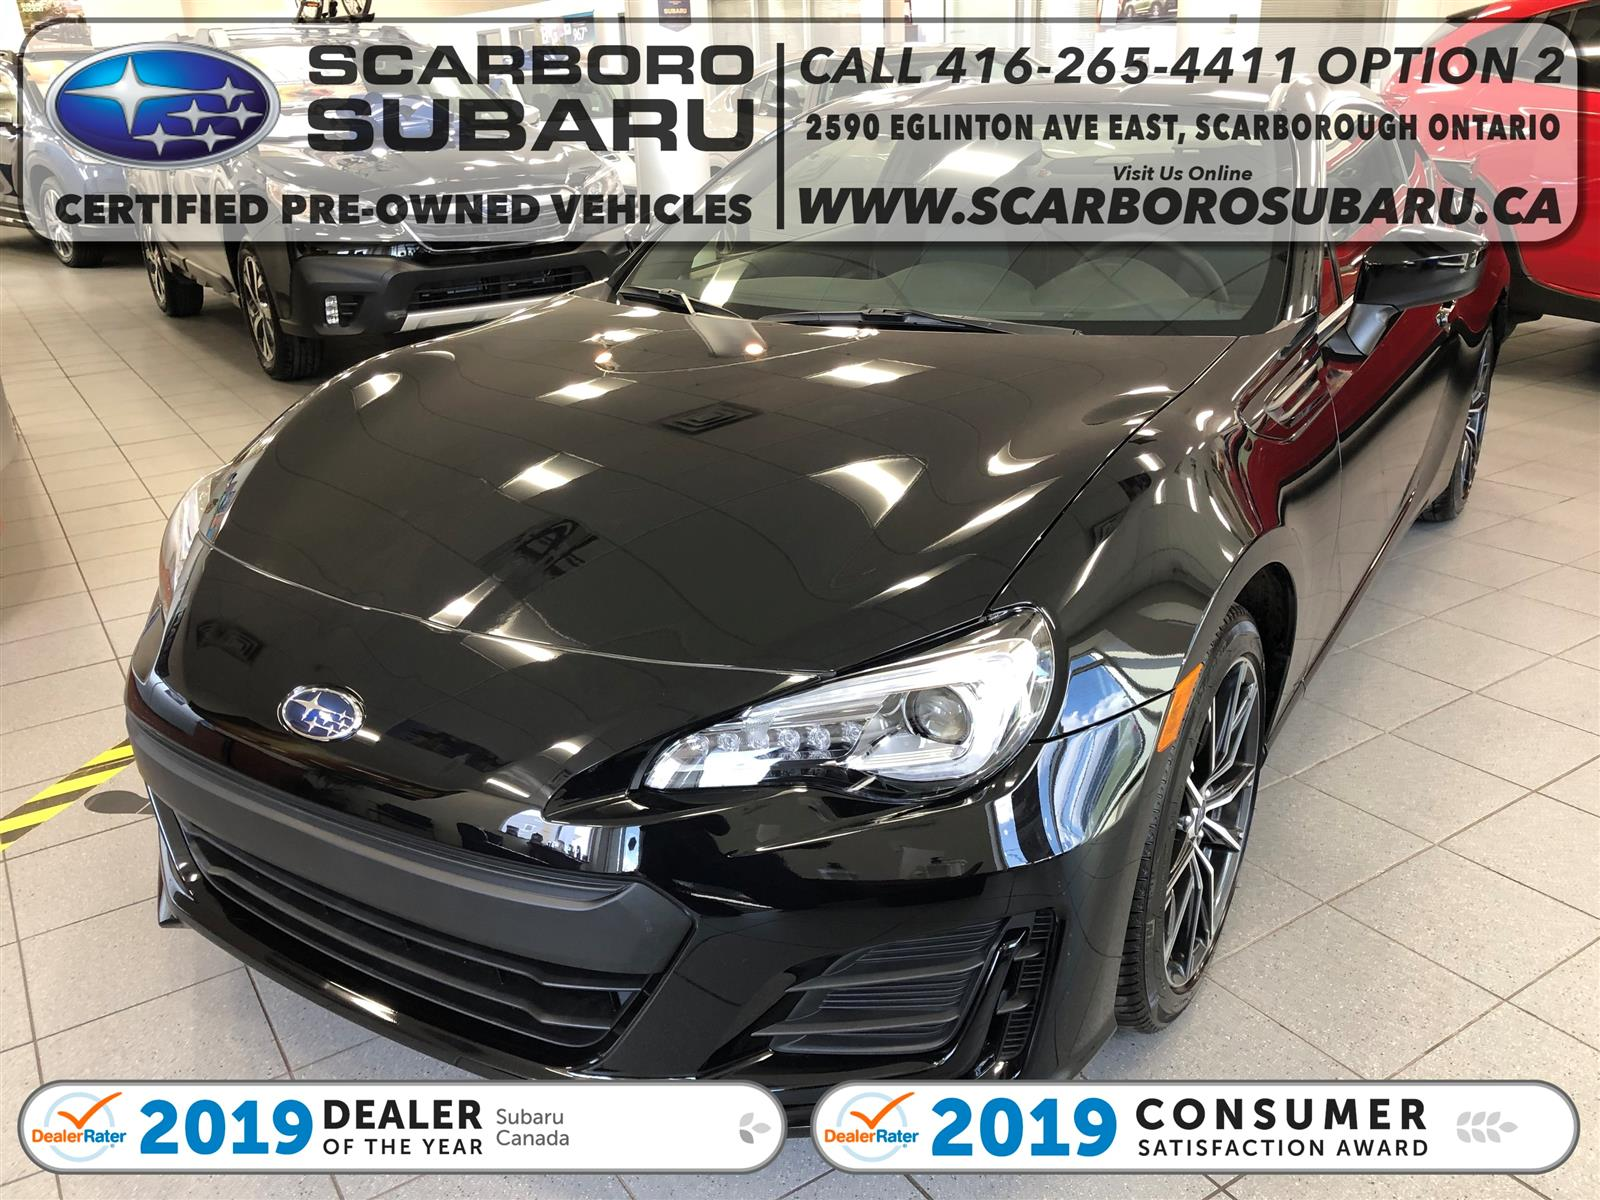 used 2020 Subaru BRZ car, priced at $26,995